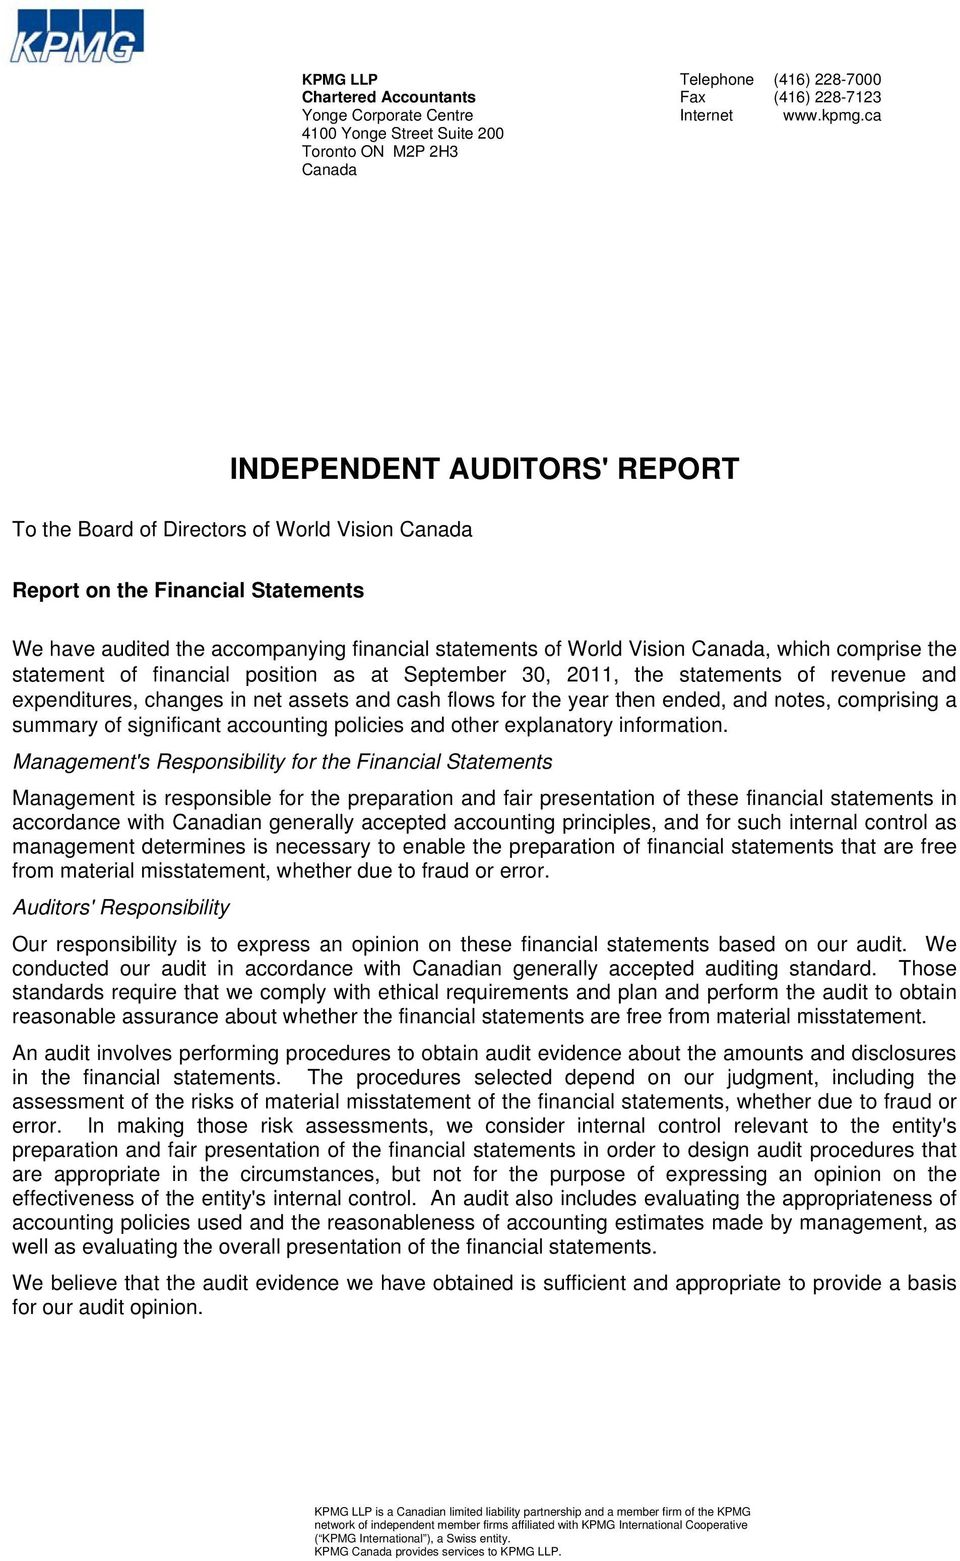 accompanying financial statements of World Vision Canada, which comprise the statement of financial position as at September 30, 2011, the statements of revenue and expenditures, changes in net